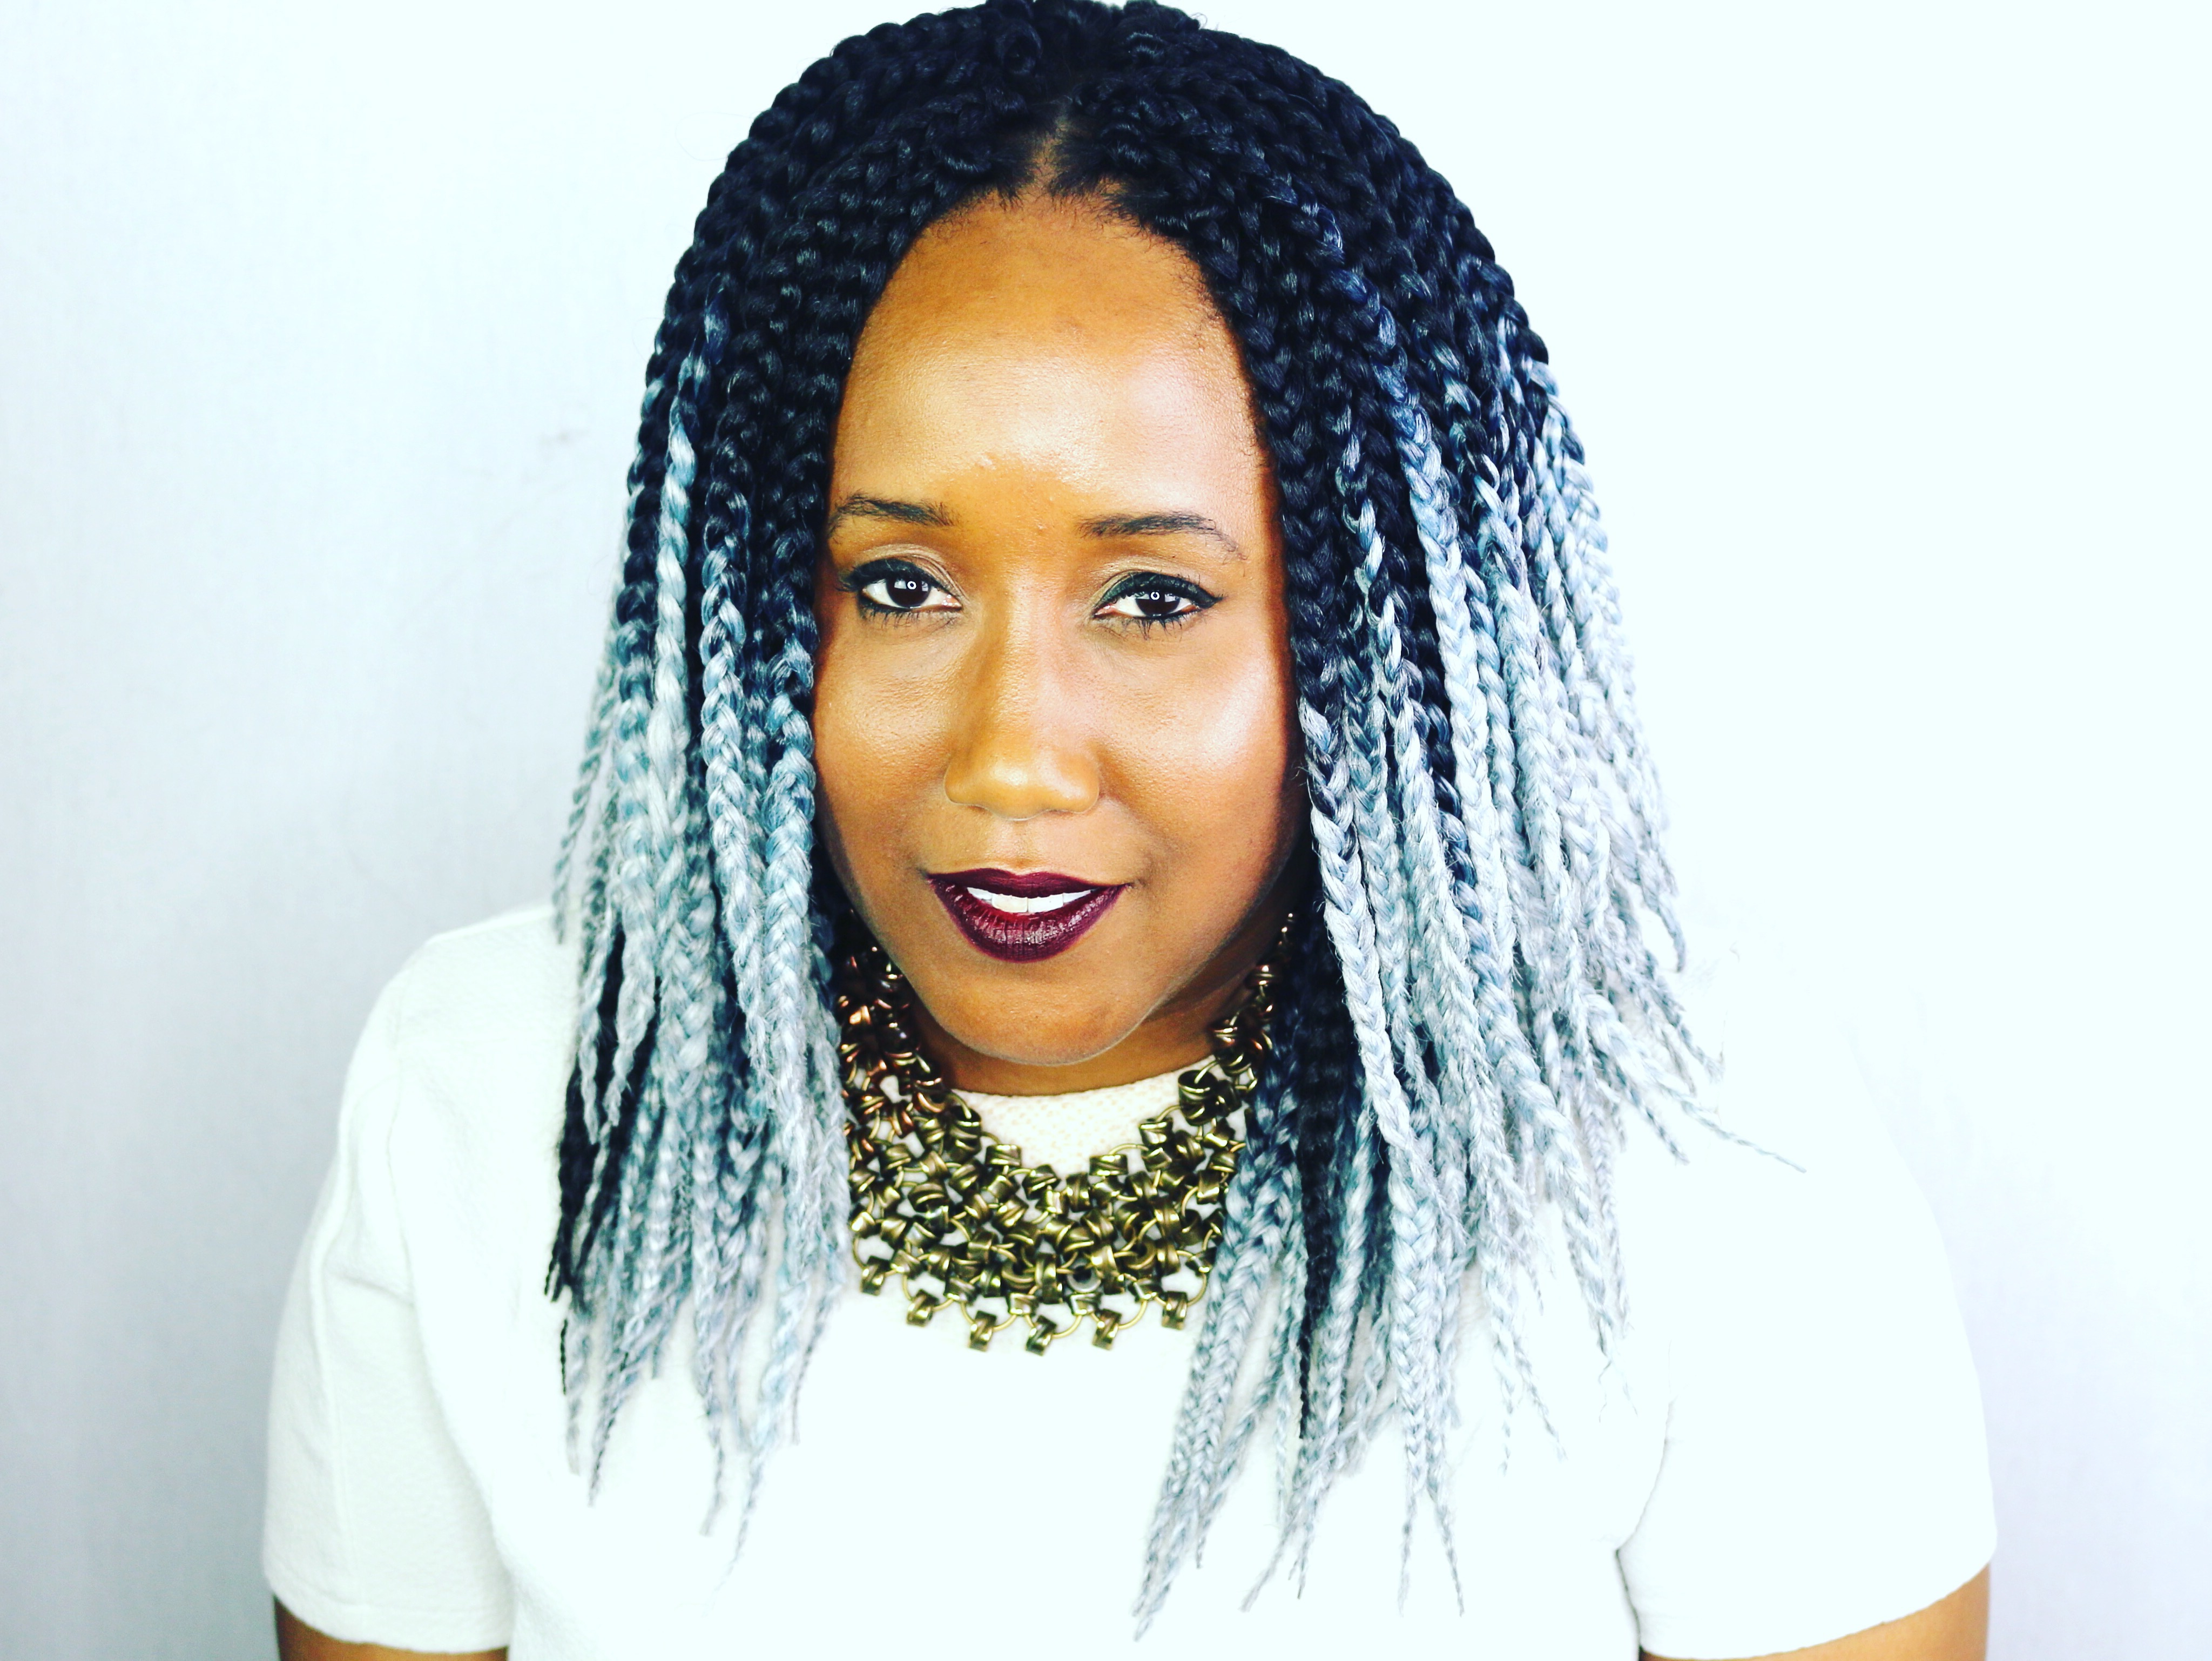 Shoulder Length Grey Ombre Crochet Box Braids 🔥 « Hairbyoj With Regard To Preferred Black Shoulder Length Braids With Accents (View 18 of 20)